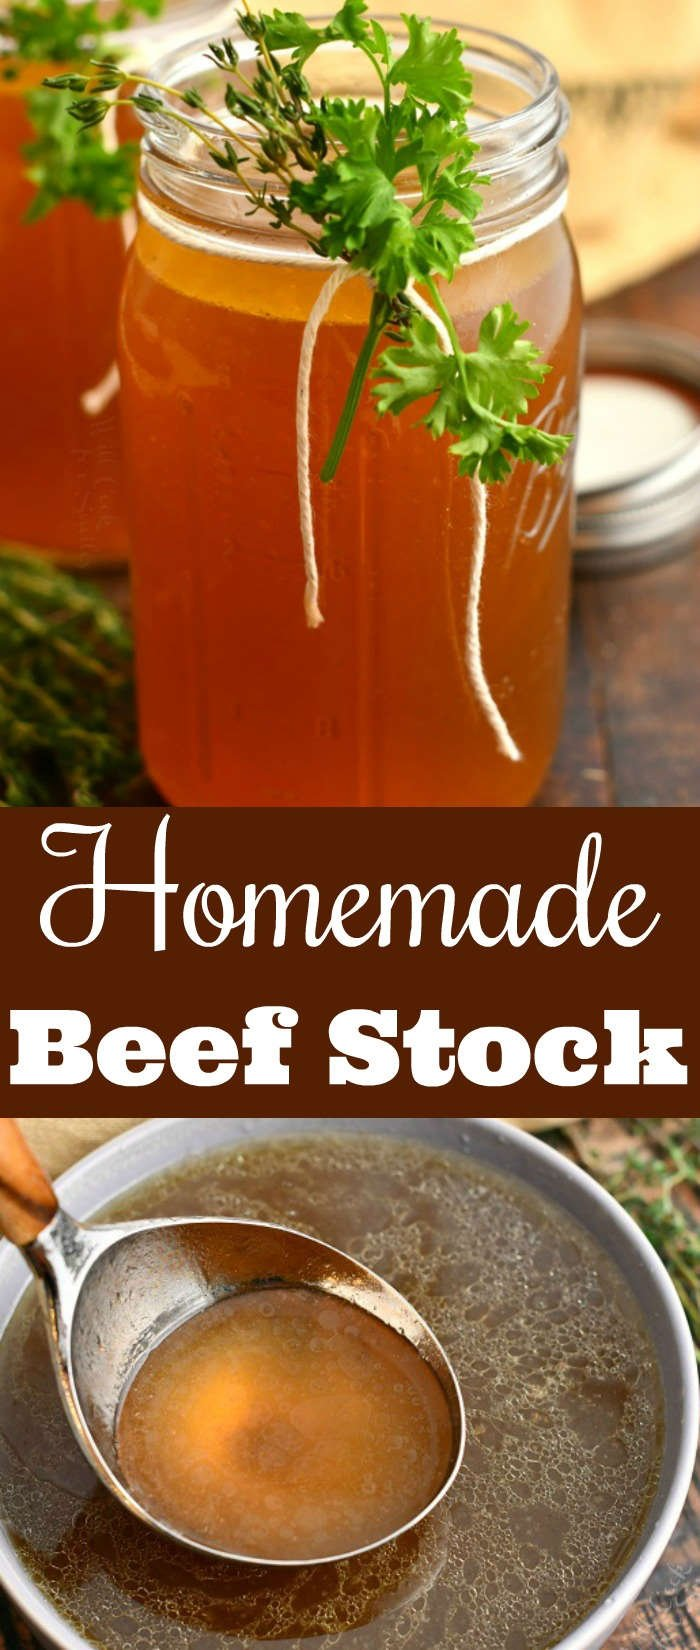 "titled photo collage: ""Homemade Beef Stock"" - stock in glass jar and on a ladle"